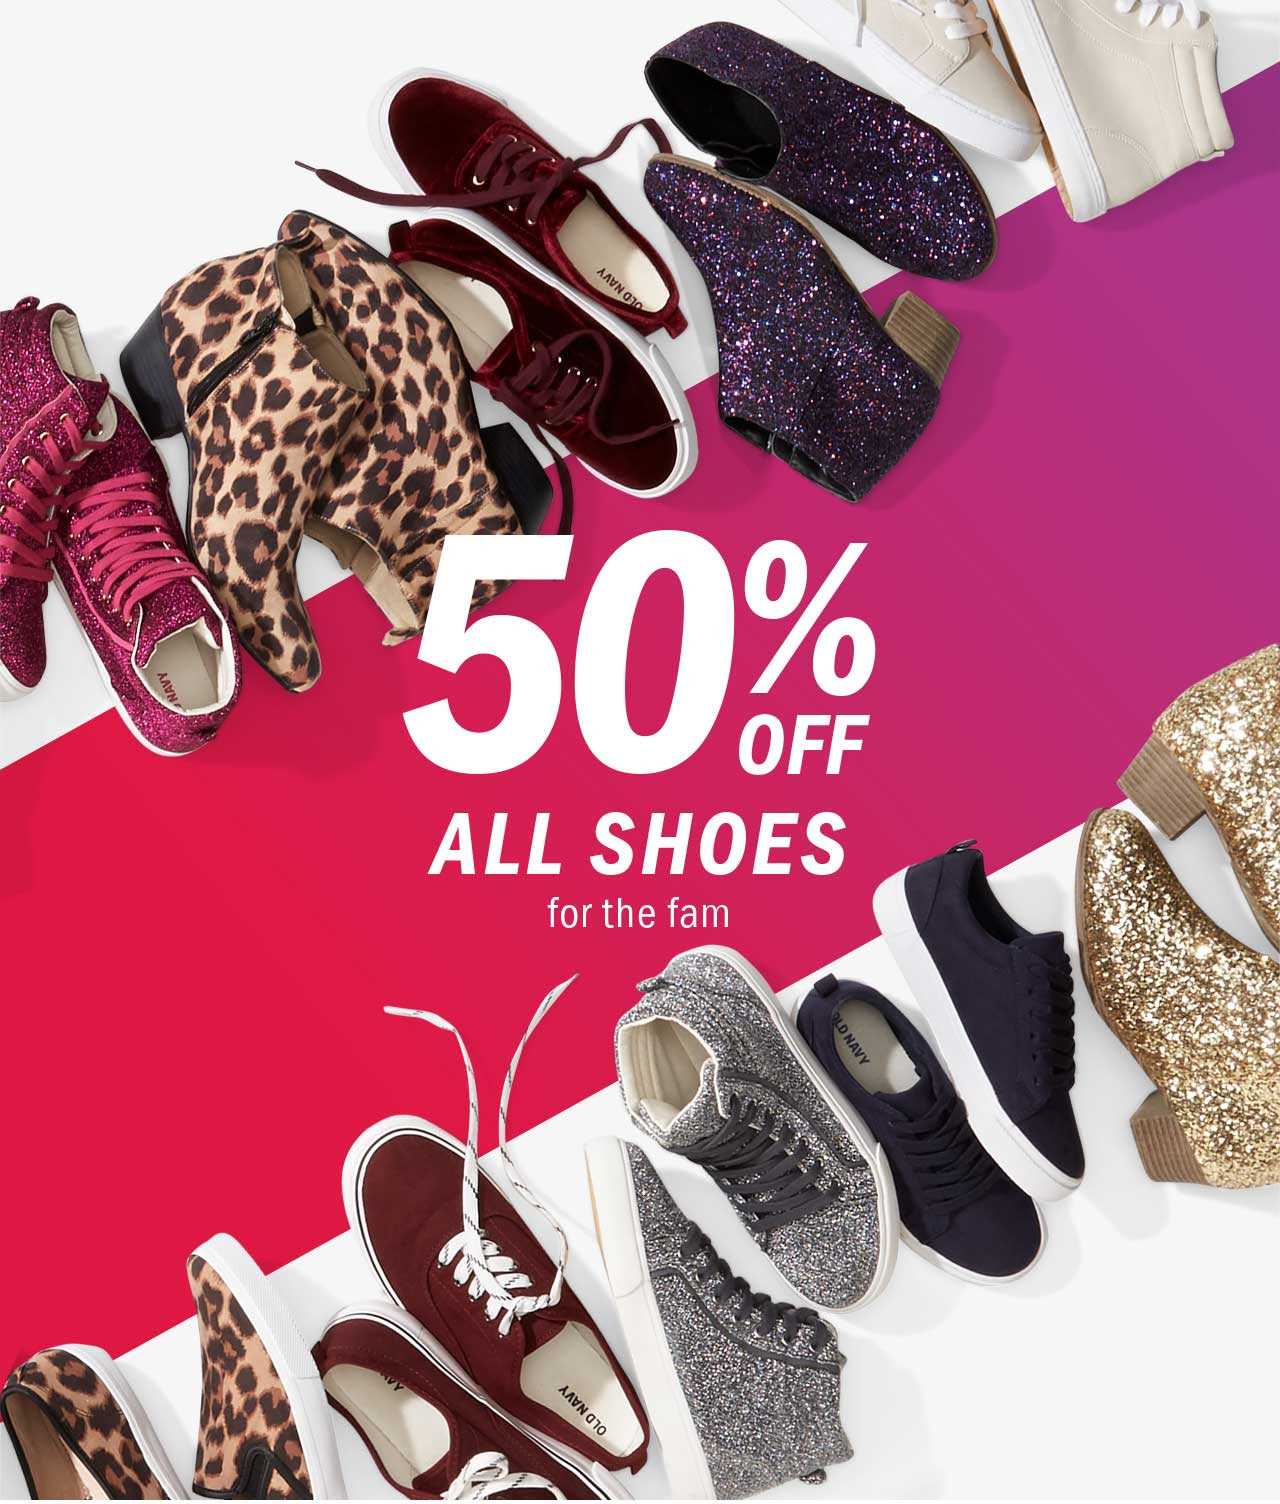 50% OFF ALL SHOES for the fam